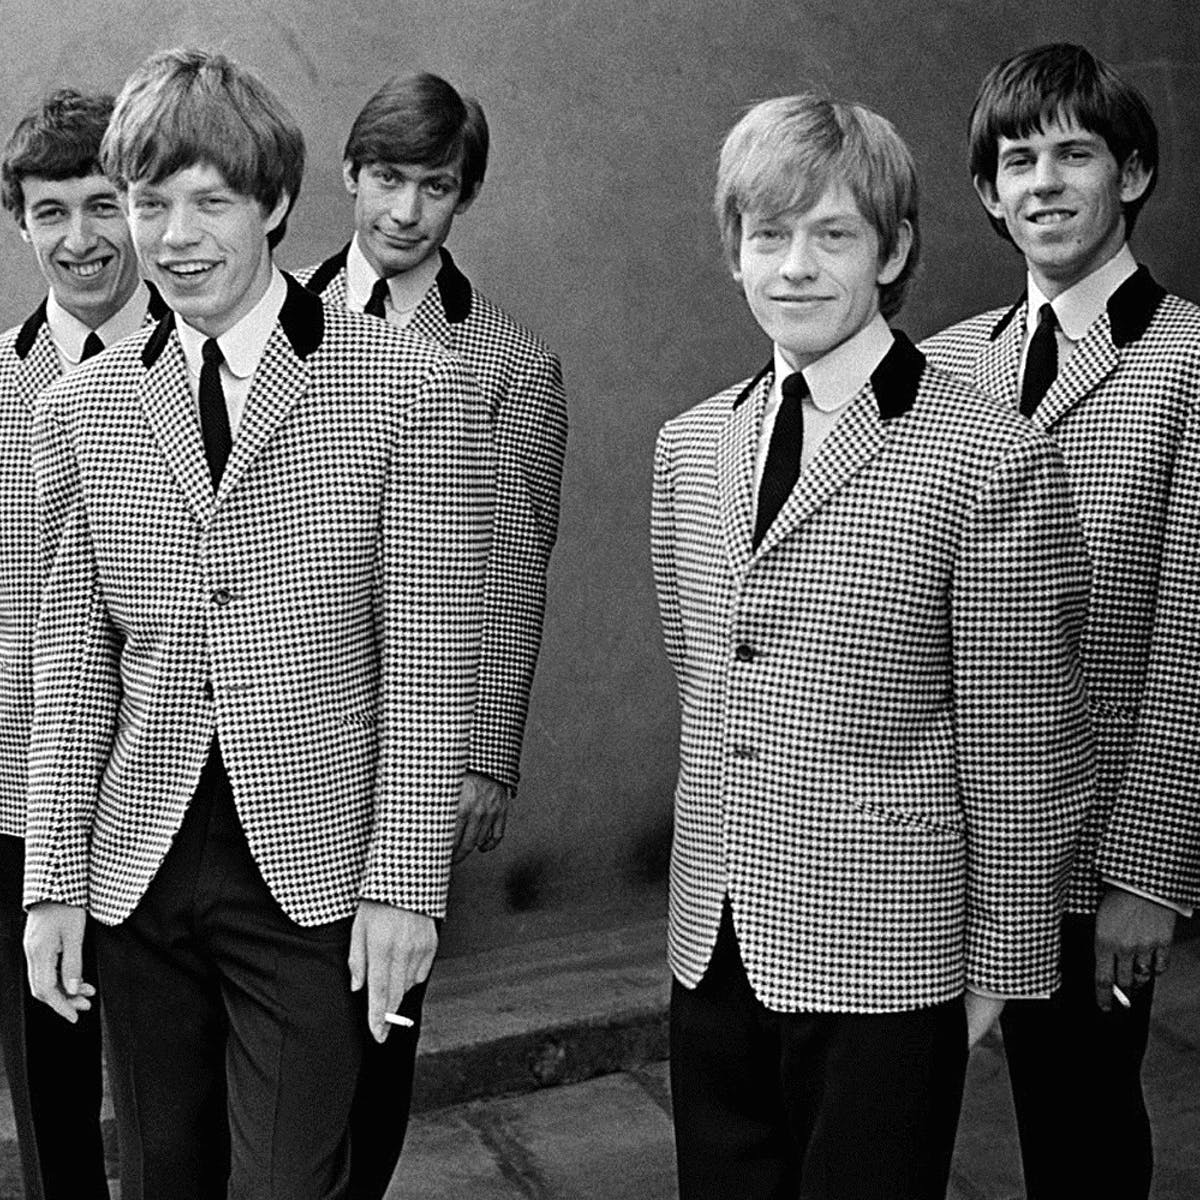 50 years ago, the Rolling Stones' first US hit evinced the band's eclectic style